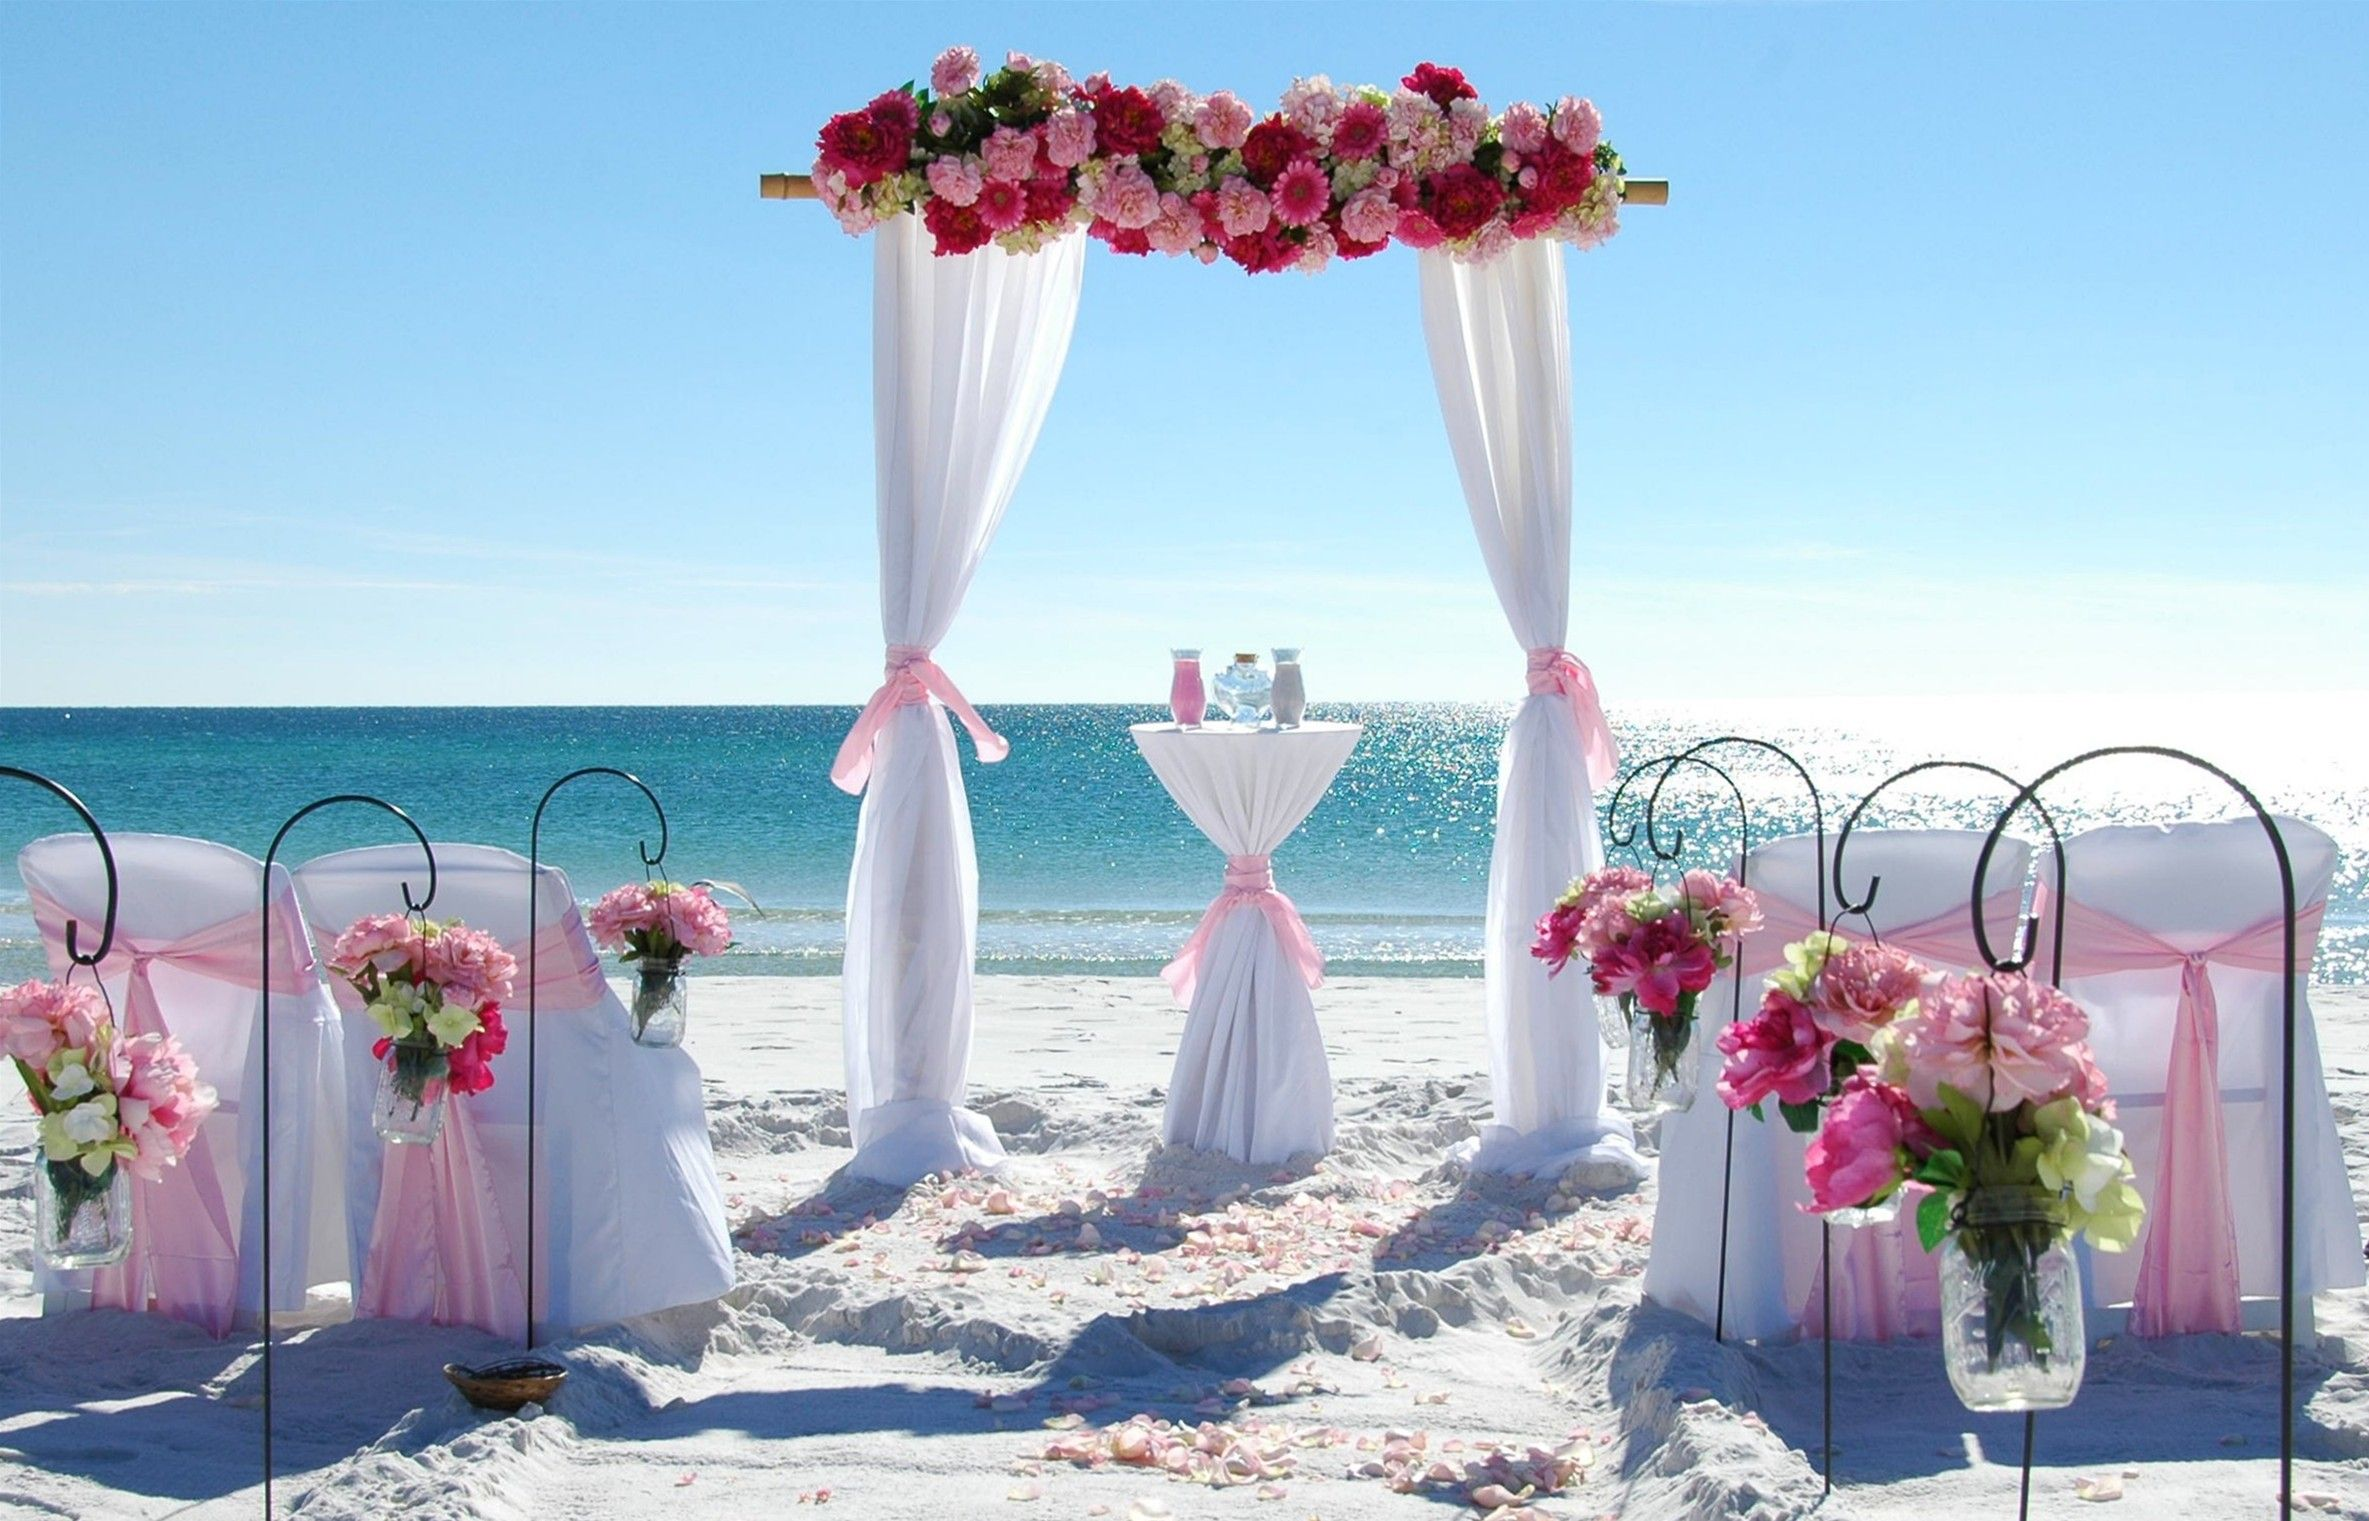 Barefoot Weddings Bliss Beach Wedding Package Includes A 2 Post Bamboo Arbor Decorated Aisle Way Sand Table Officiate